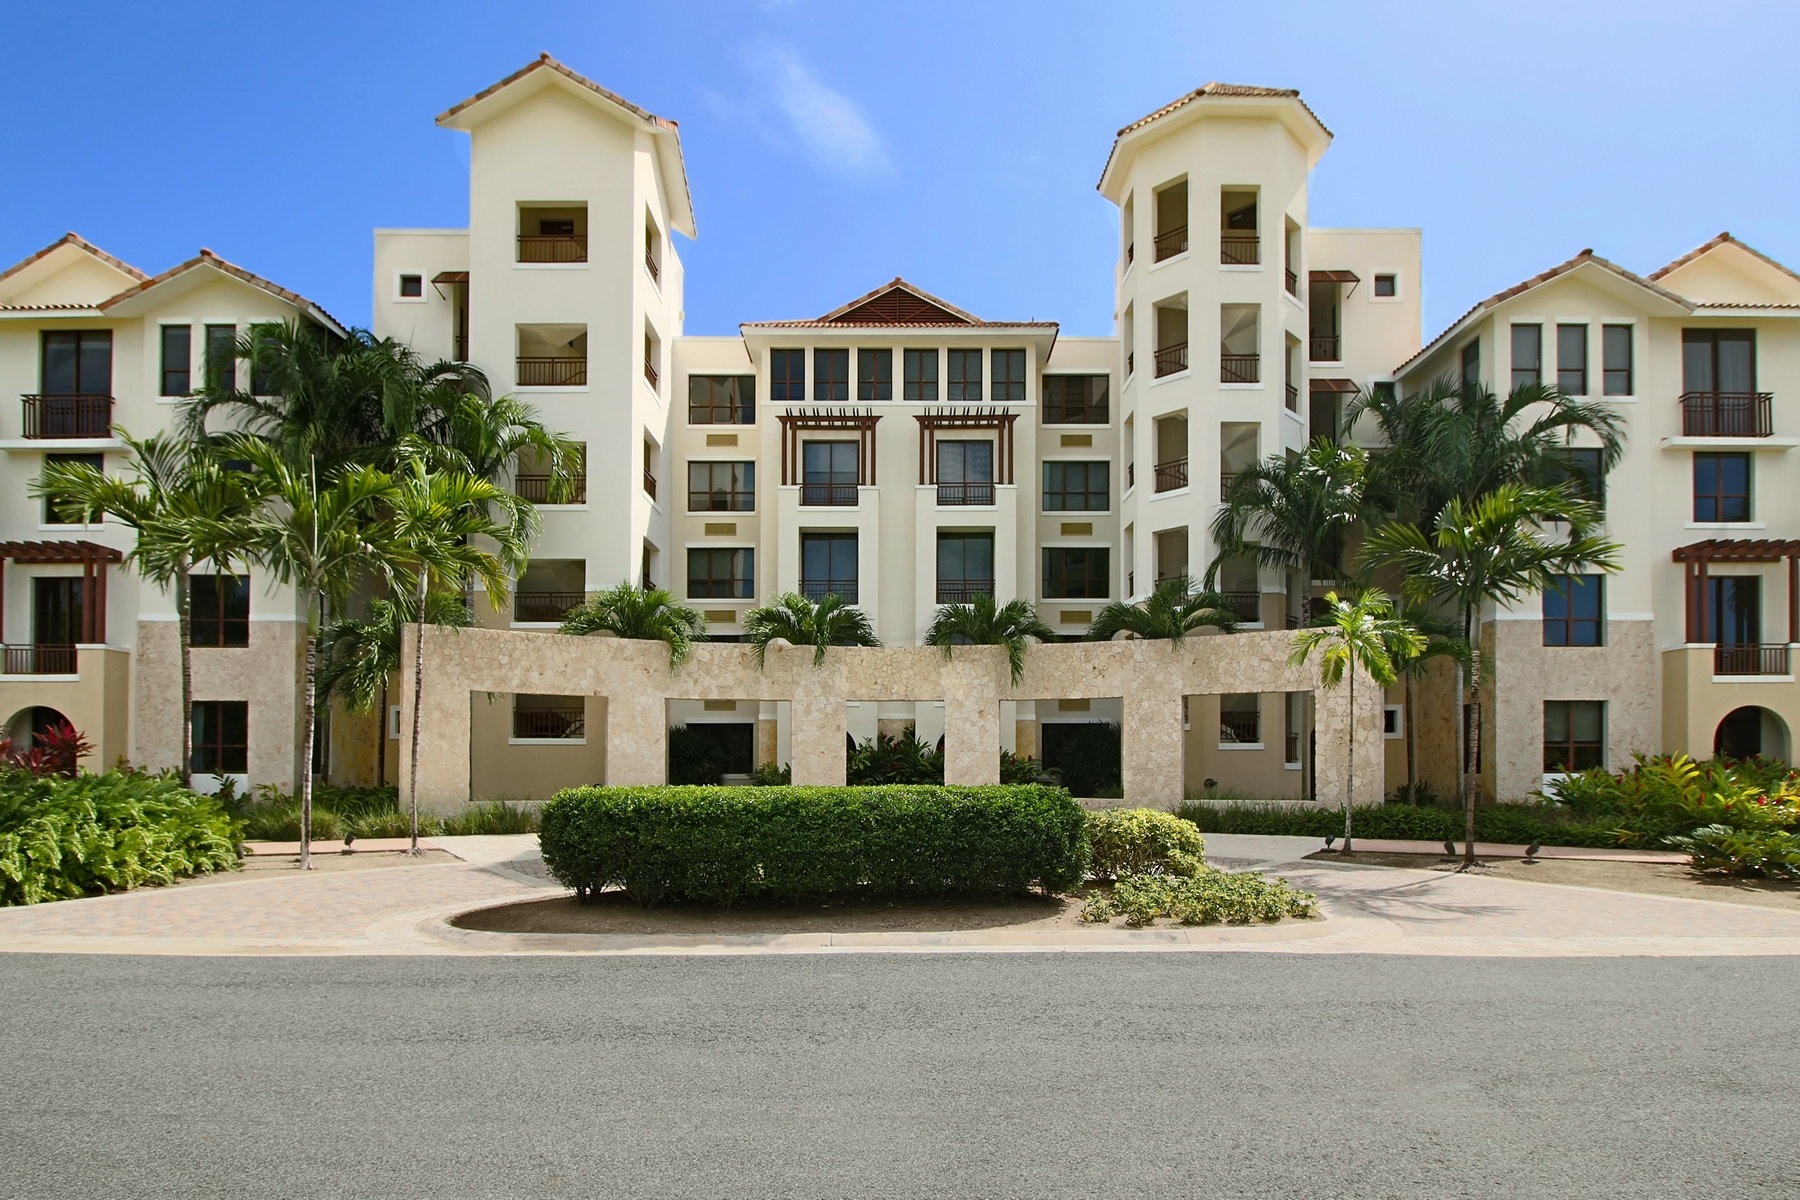 Additional photo for property listing at Residence 144 at 238 Candelero Drive 238 Candelero Drive, Apt 144 Solarea Beach Resort and Yacht Club Palmas Del Mar, Puerto Rico 00791 Porto Rico